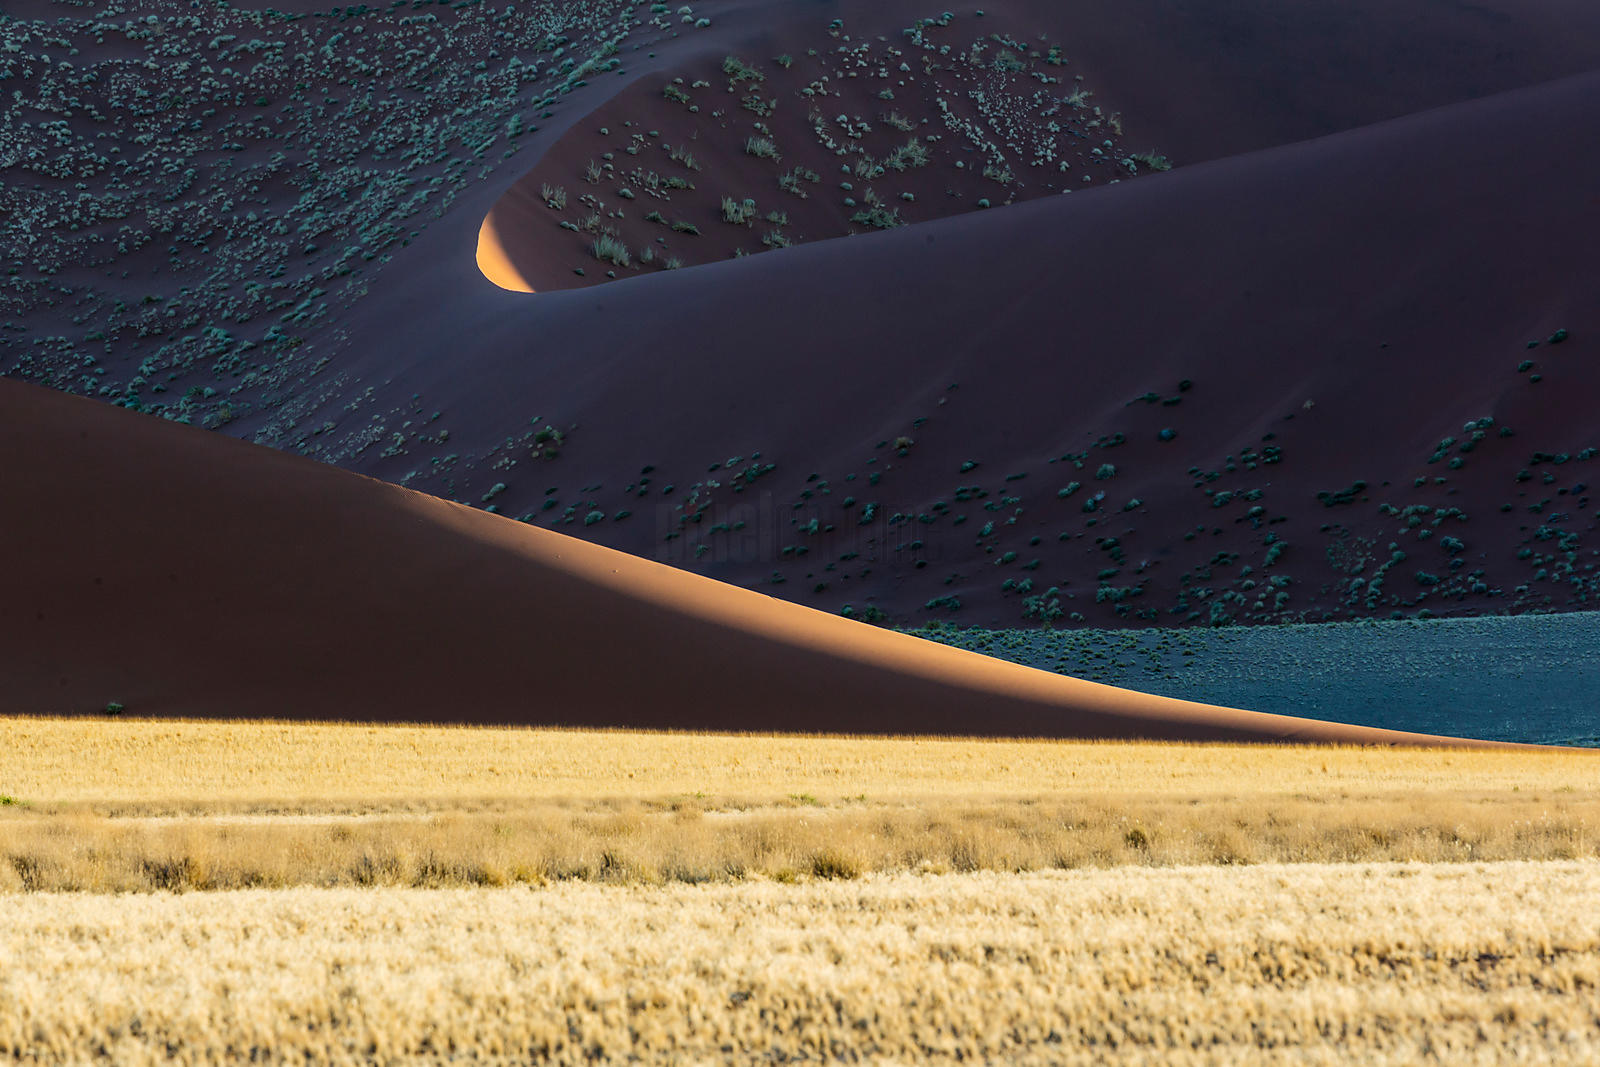 Dune Patterns at Sunset